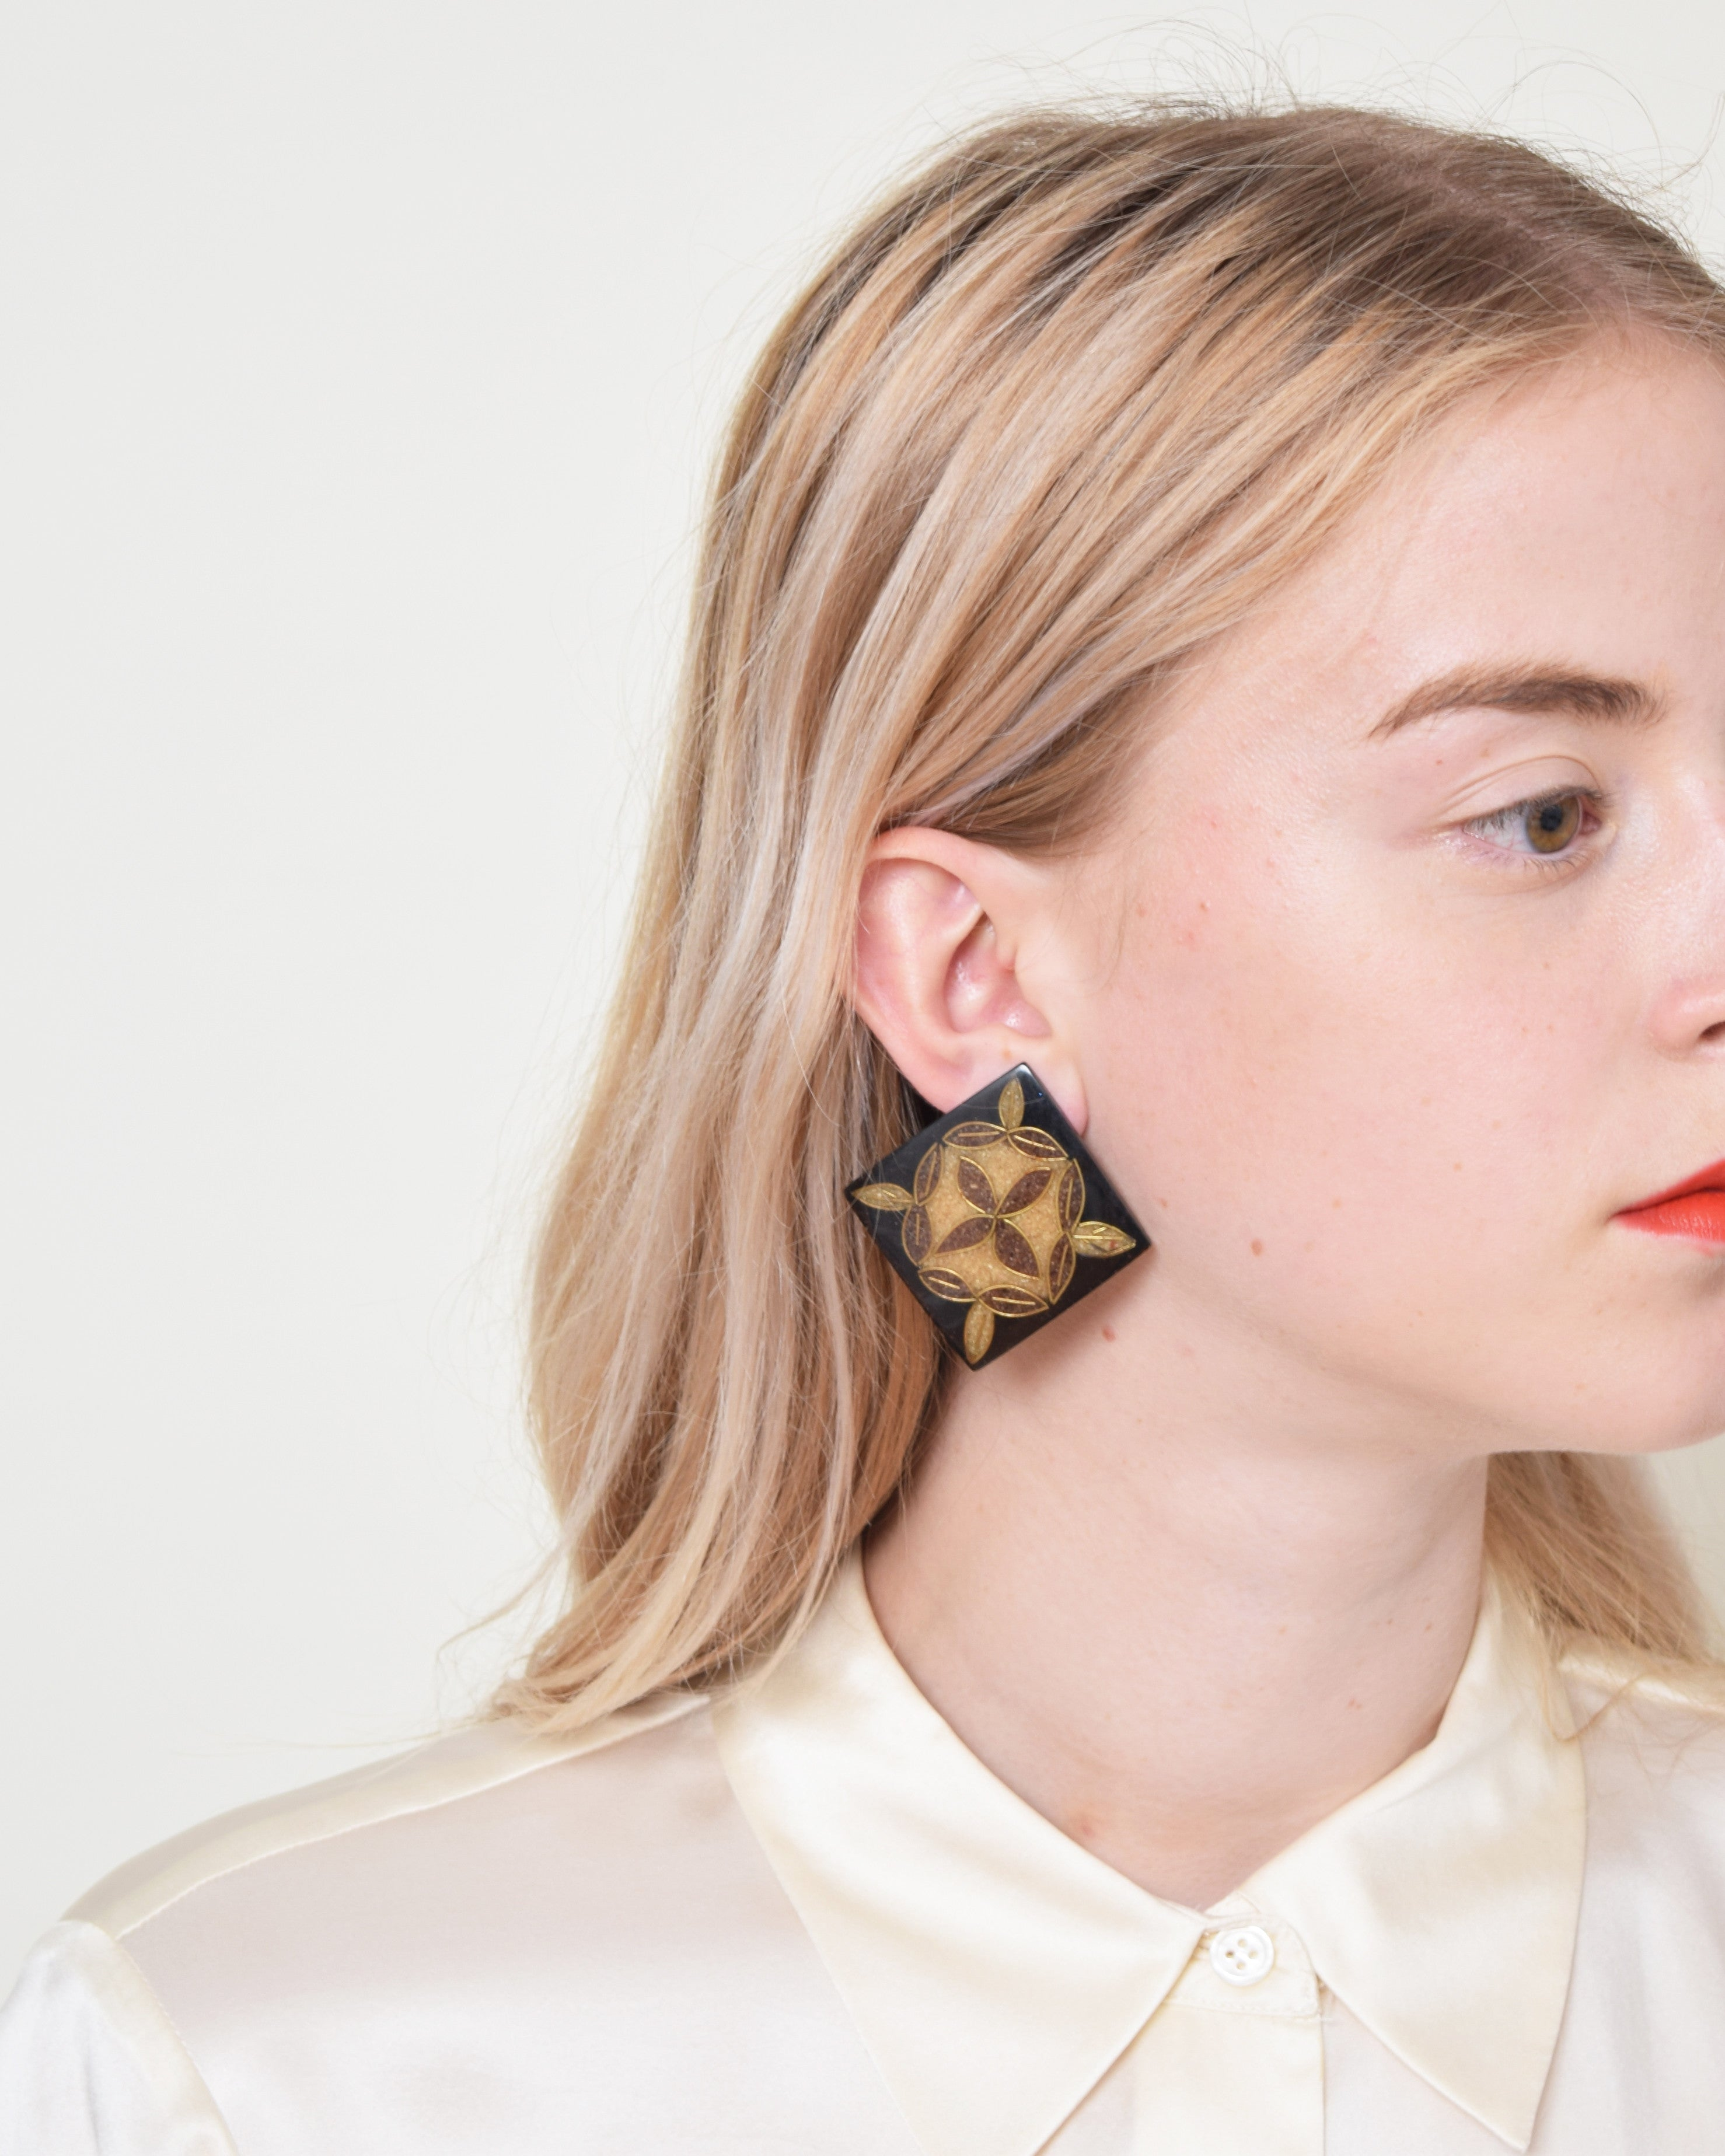 Vintage Inlaid Lucite Earrings